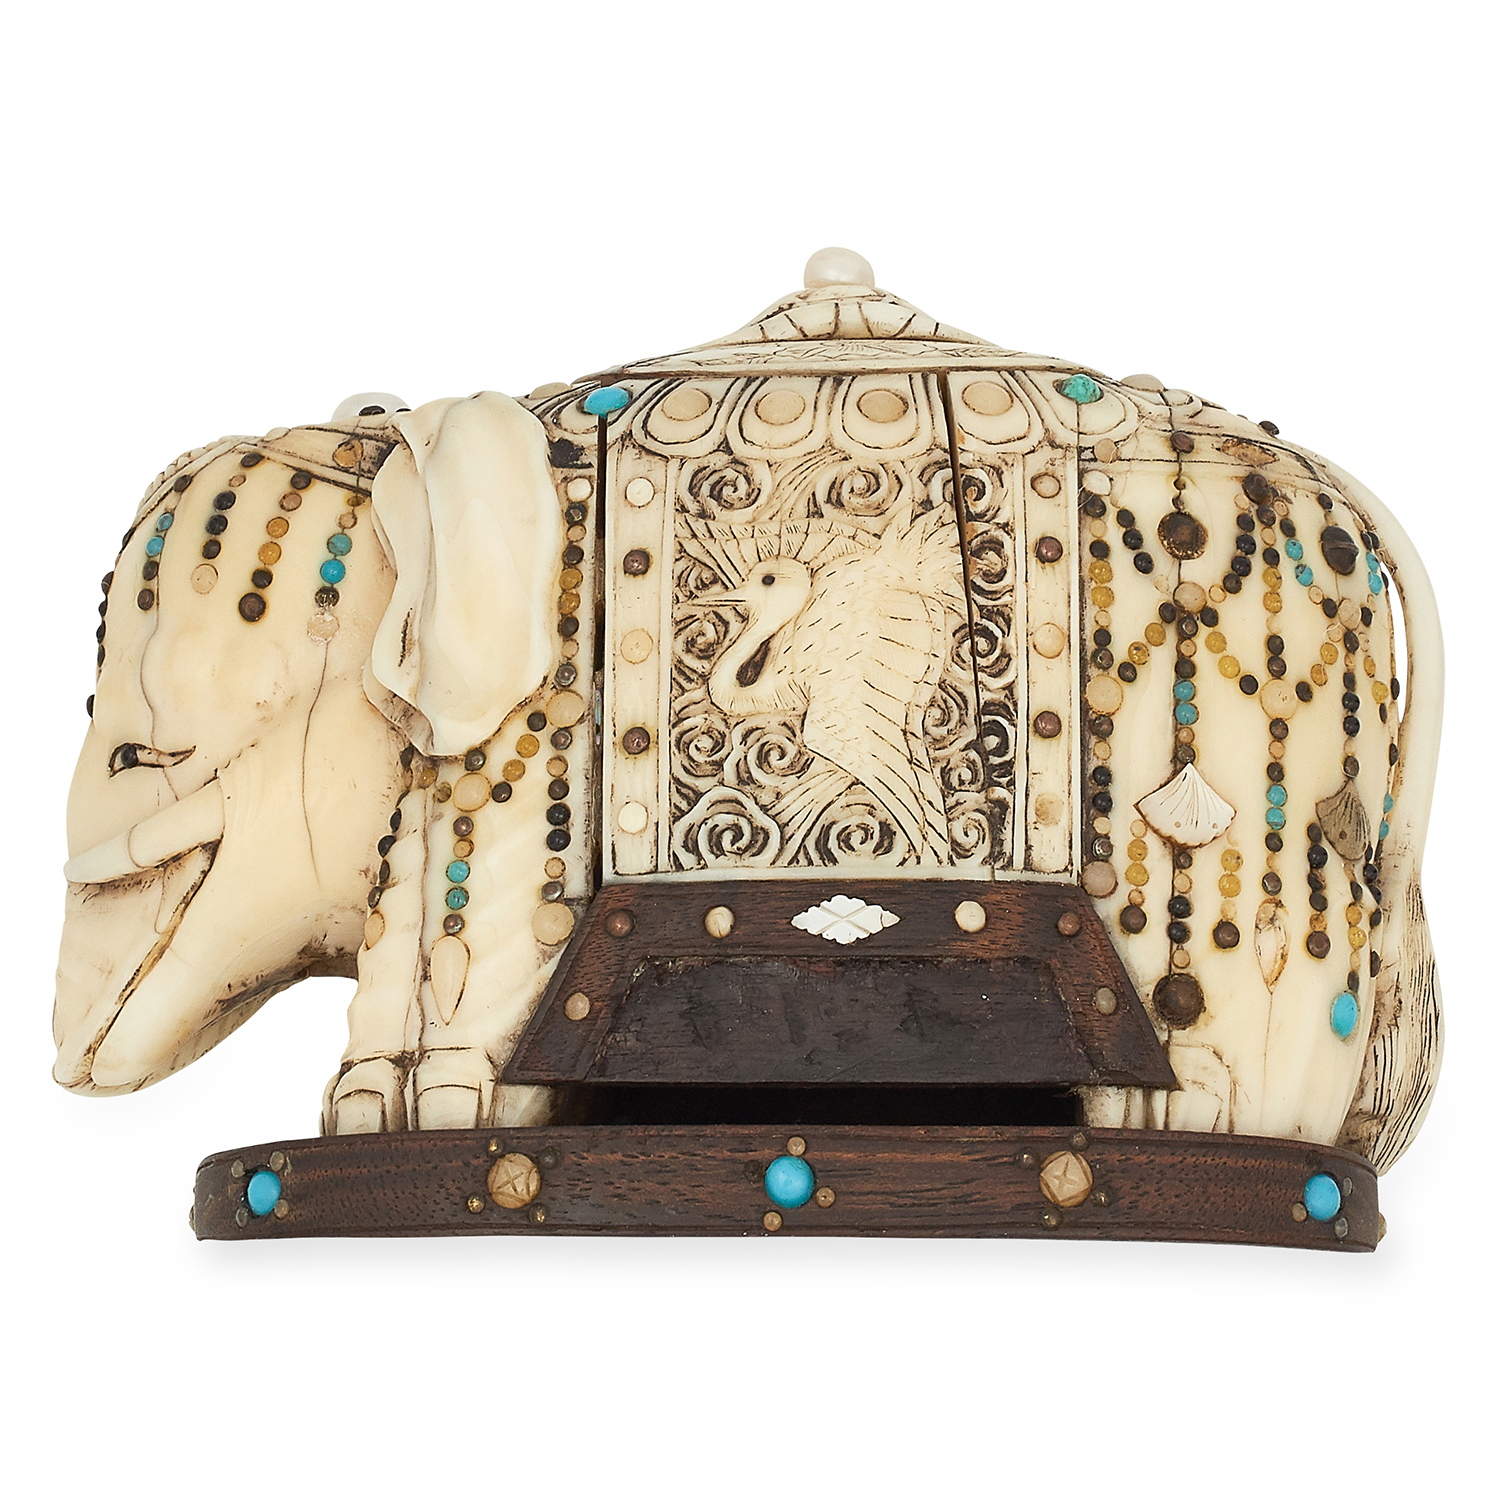 ANTIQUE MUGHAL IVORY GEMSET ELEPHANT STATUE with decorated detailing, 11cm, 334.7g.